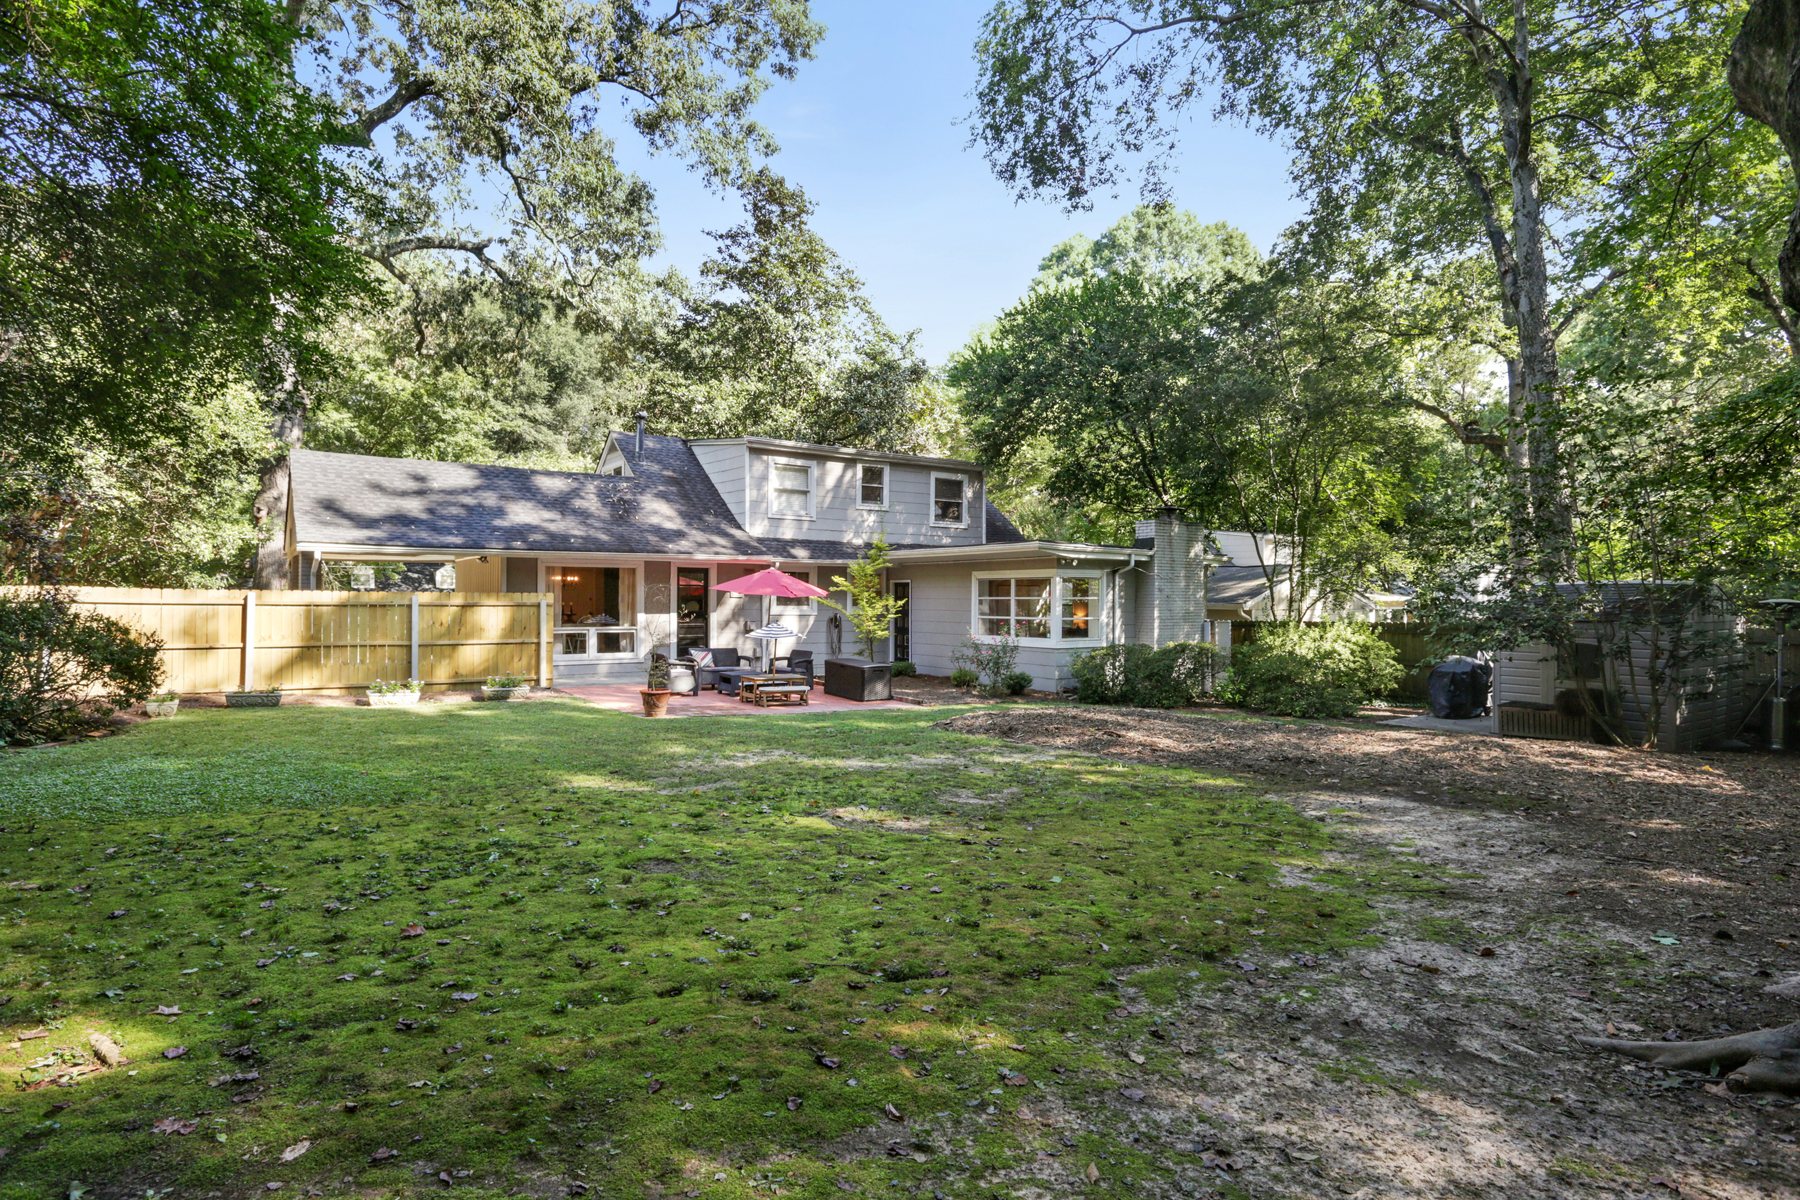 Additional photo for property listing at Charming Updated Home On Large Lot 2426 Ridgewood Road Atlanta, Georgia 30318 Estados Unidos